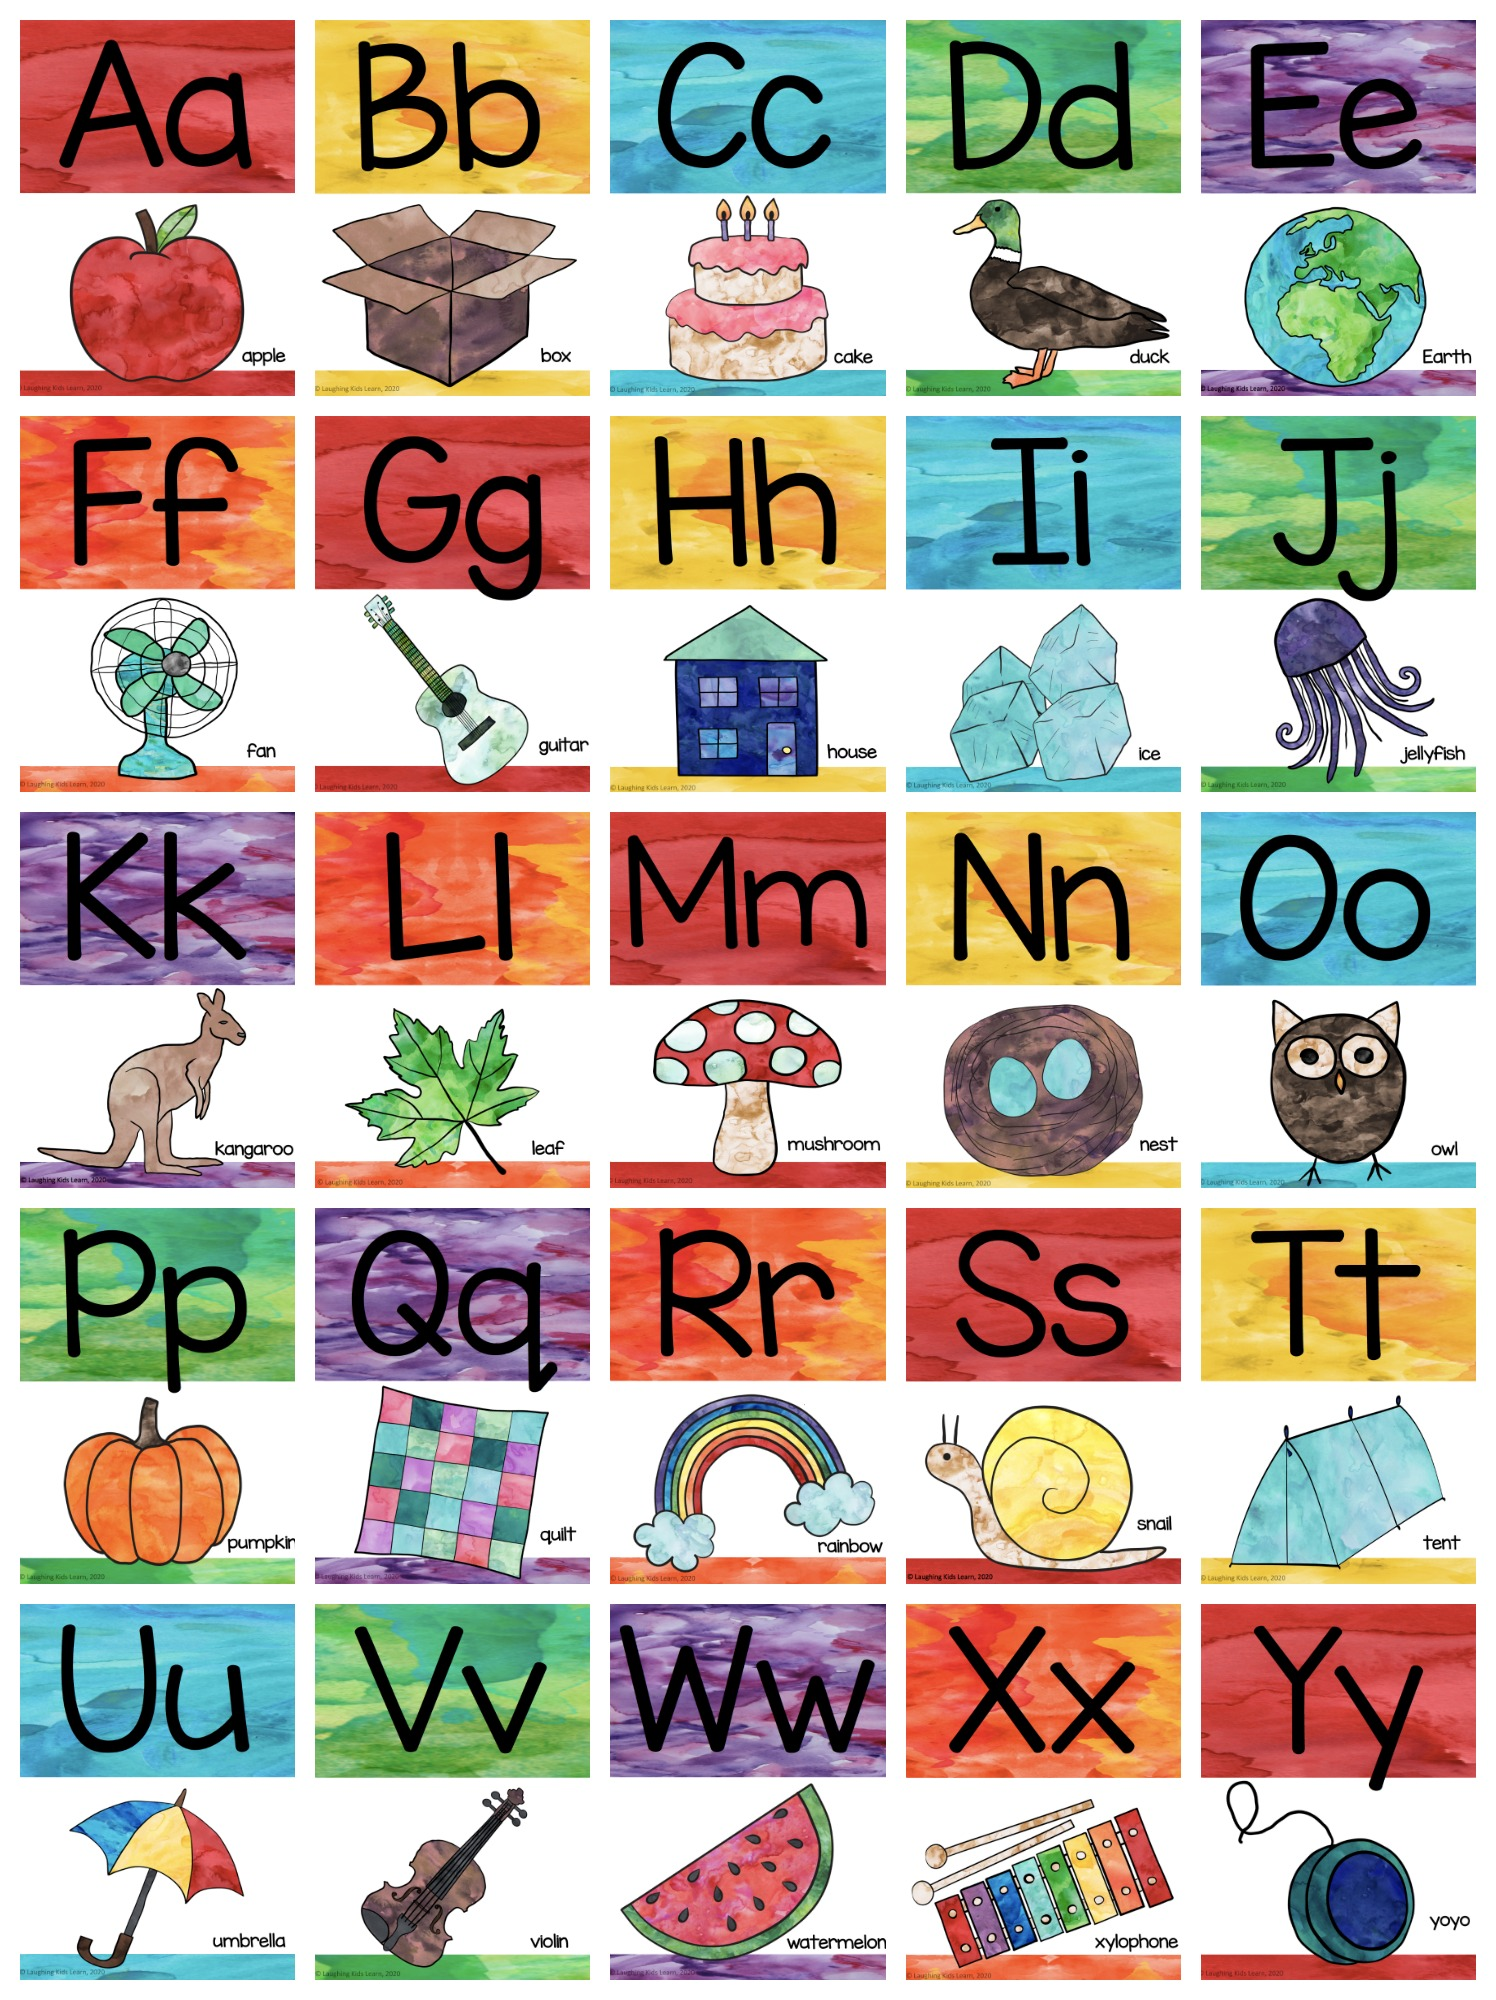 ABC Lied | ABC Song | Alphabet Song - YouTube